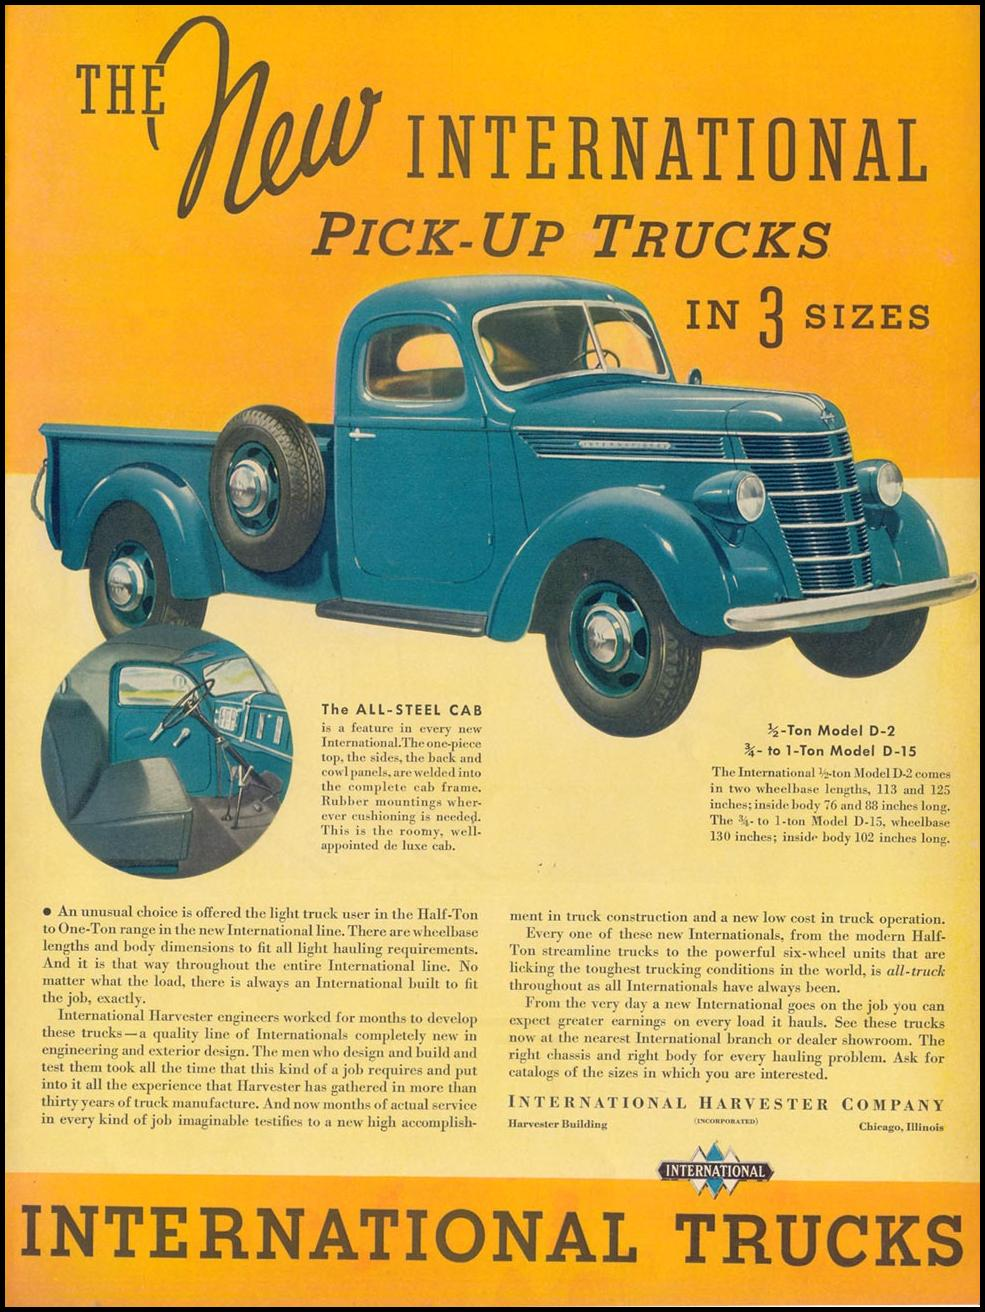 INTERNATIONAL TRUCKS LIFE 09/13/1937